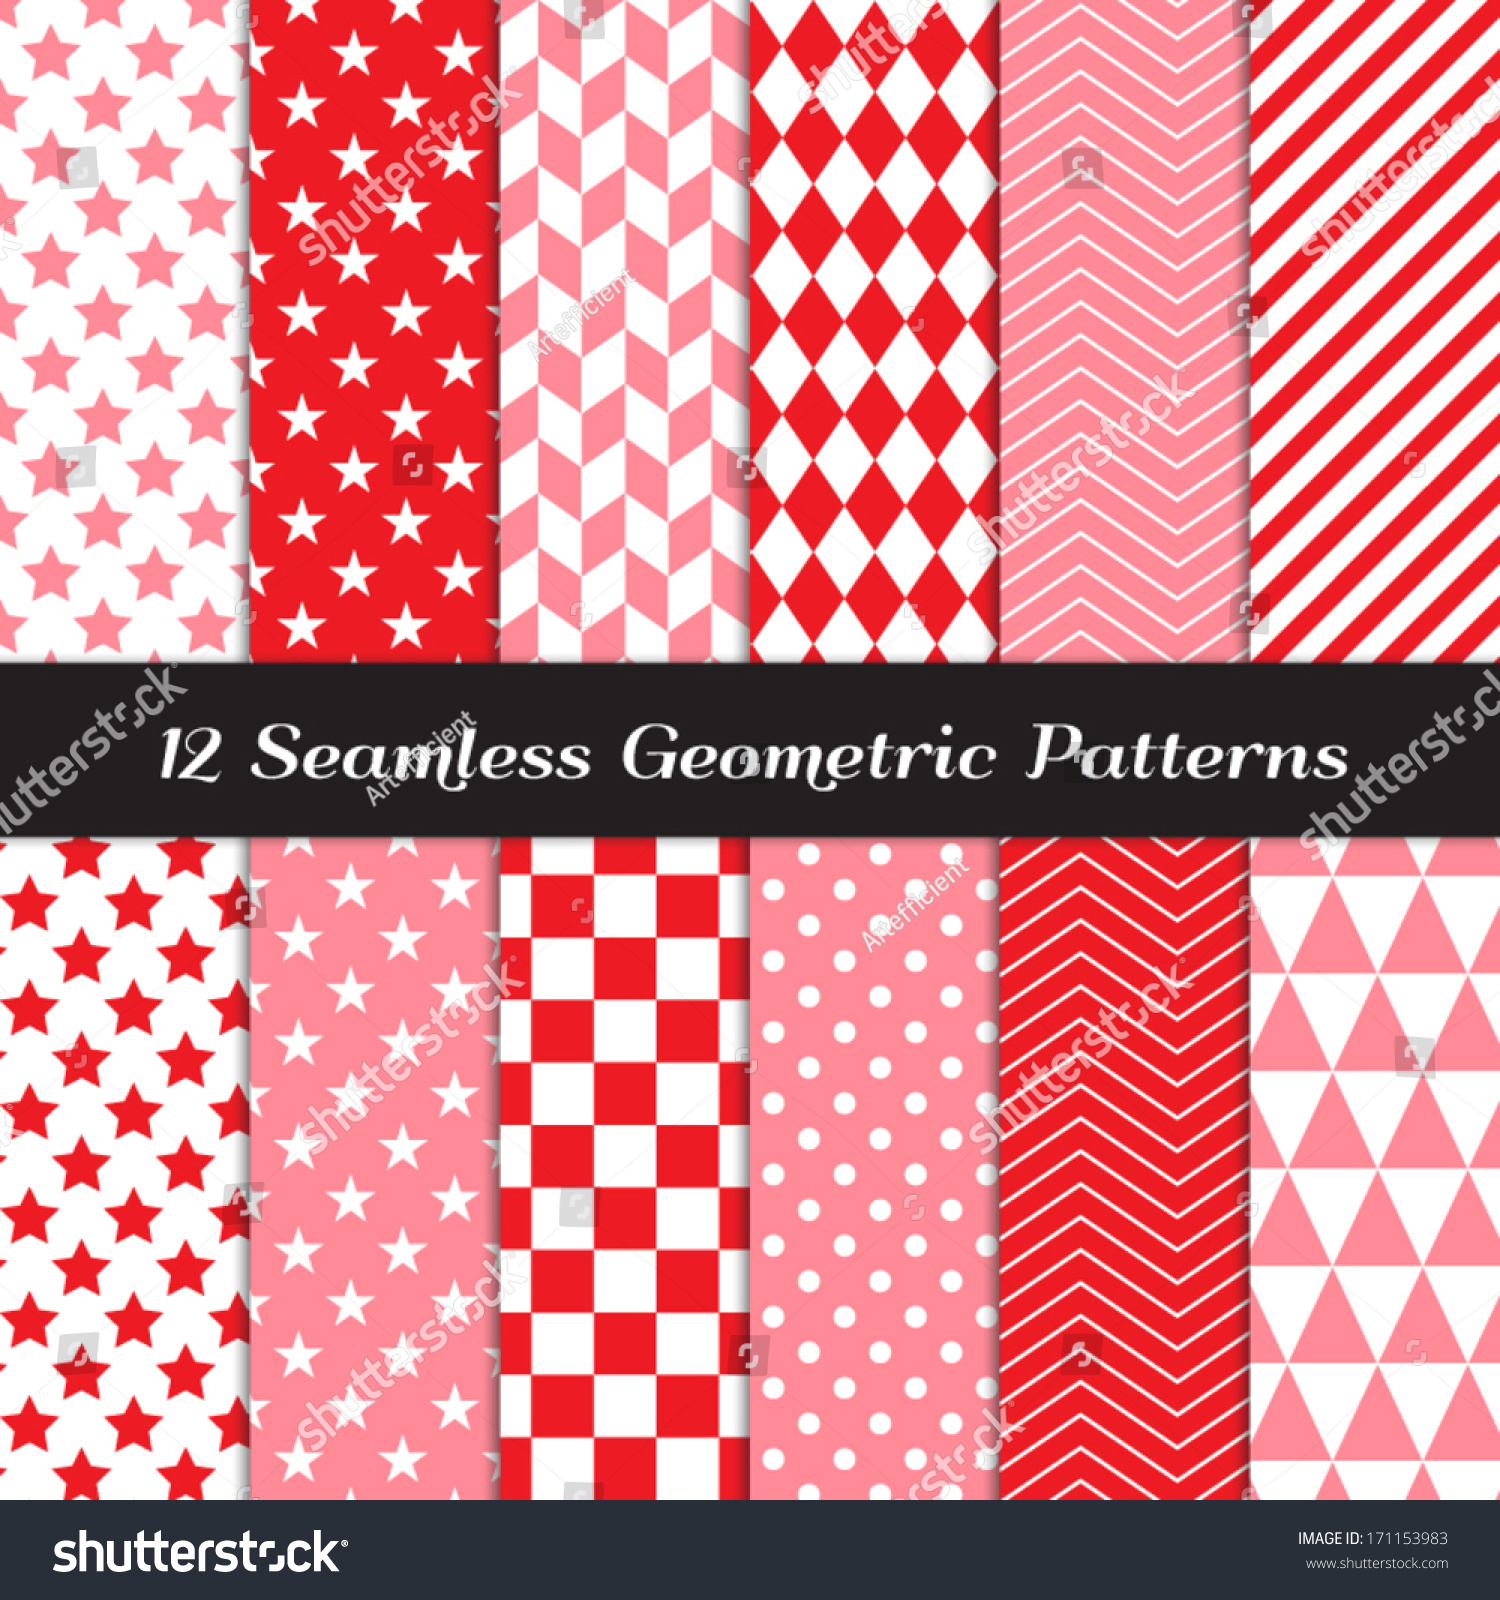 Pink Red White Geometric Seamless Patterns Stock Vector (Royalty ...